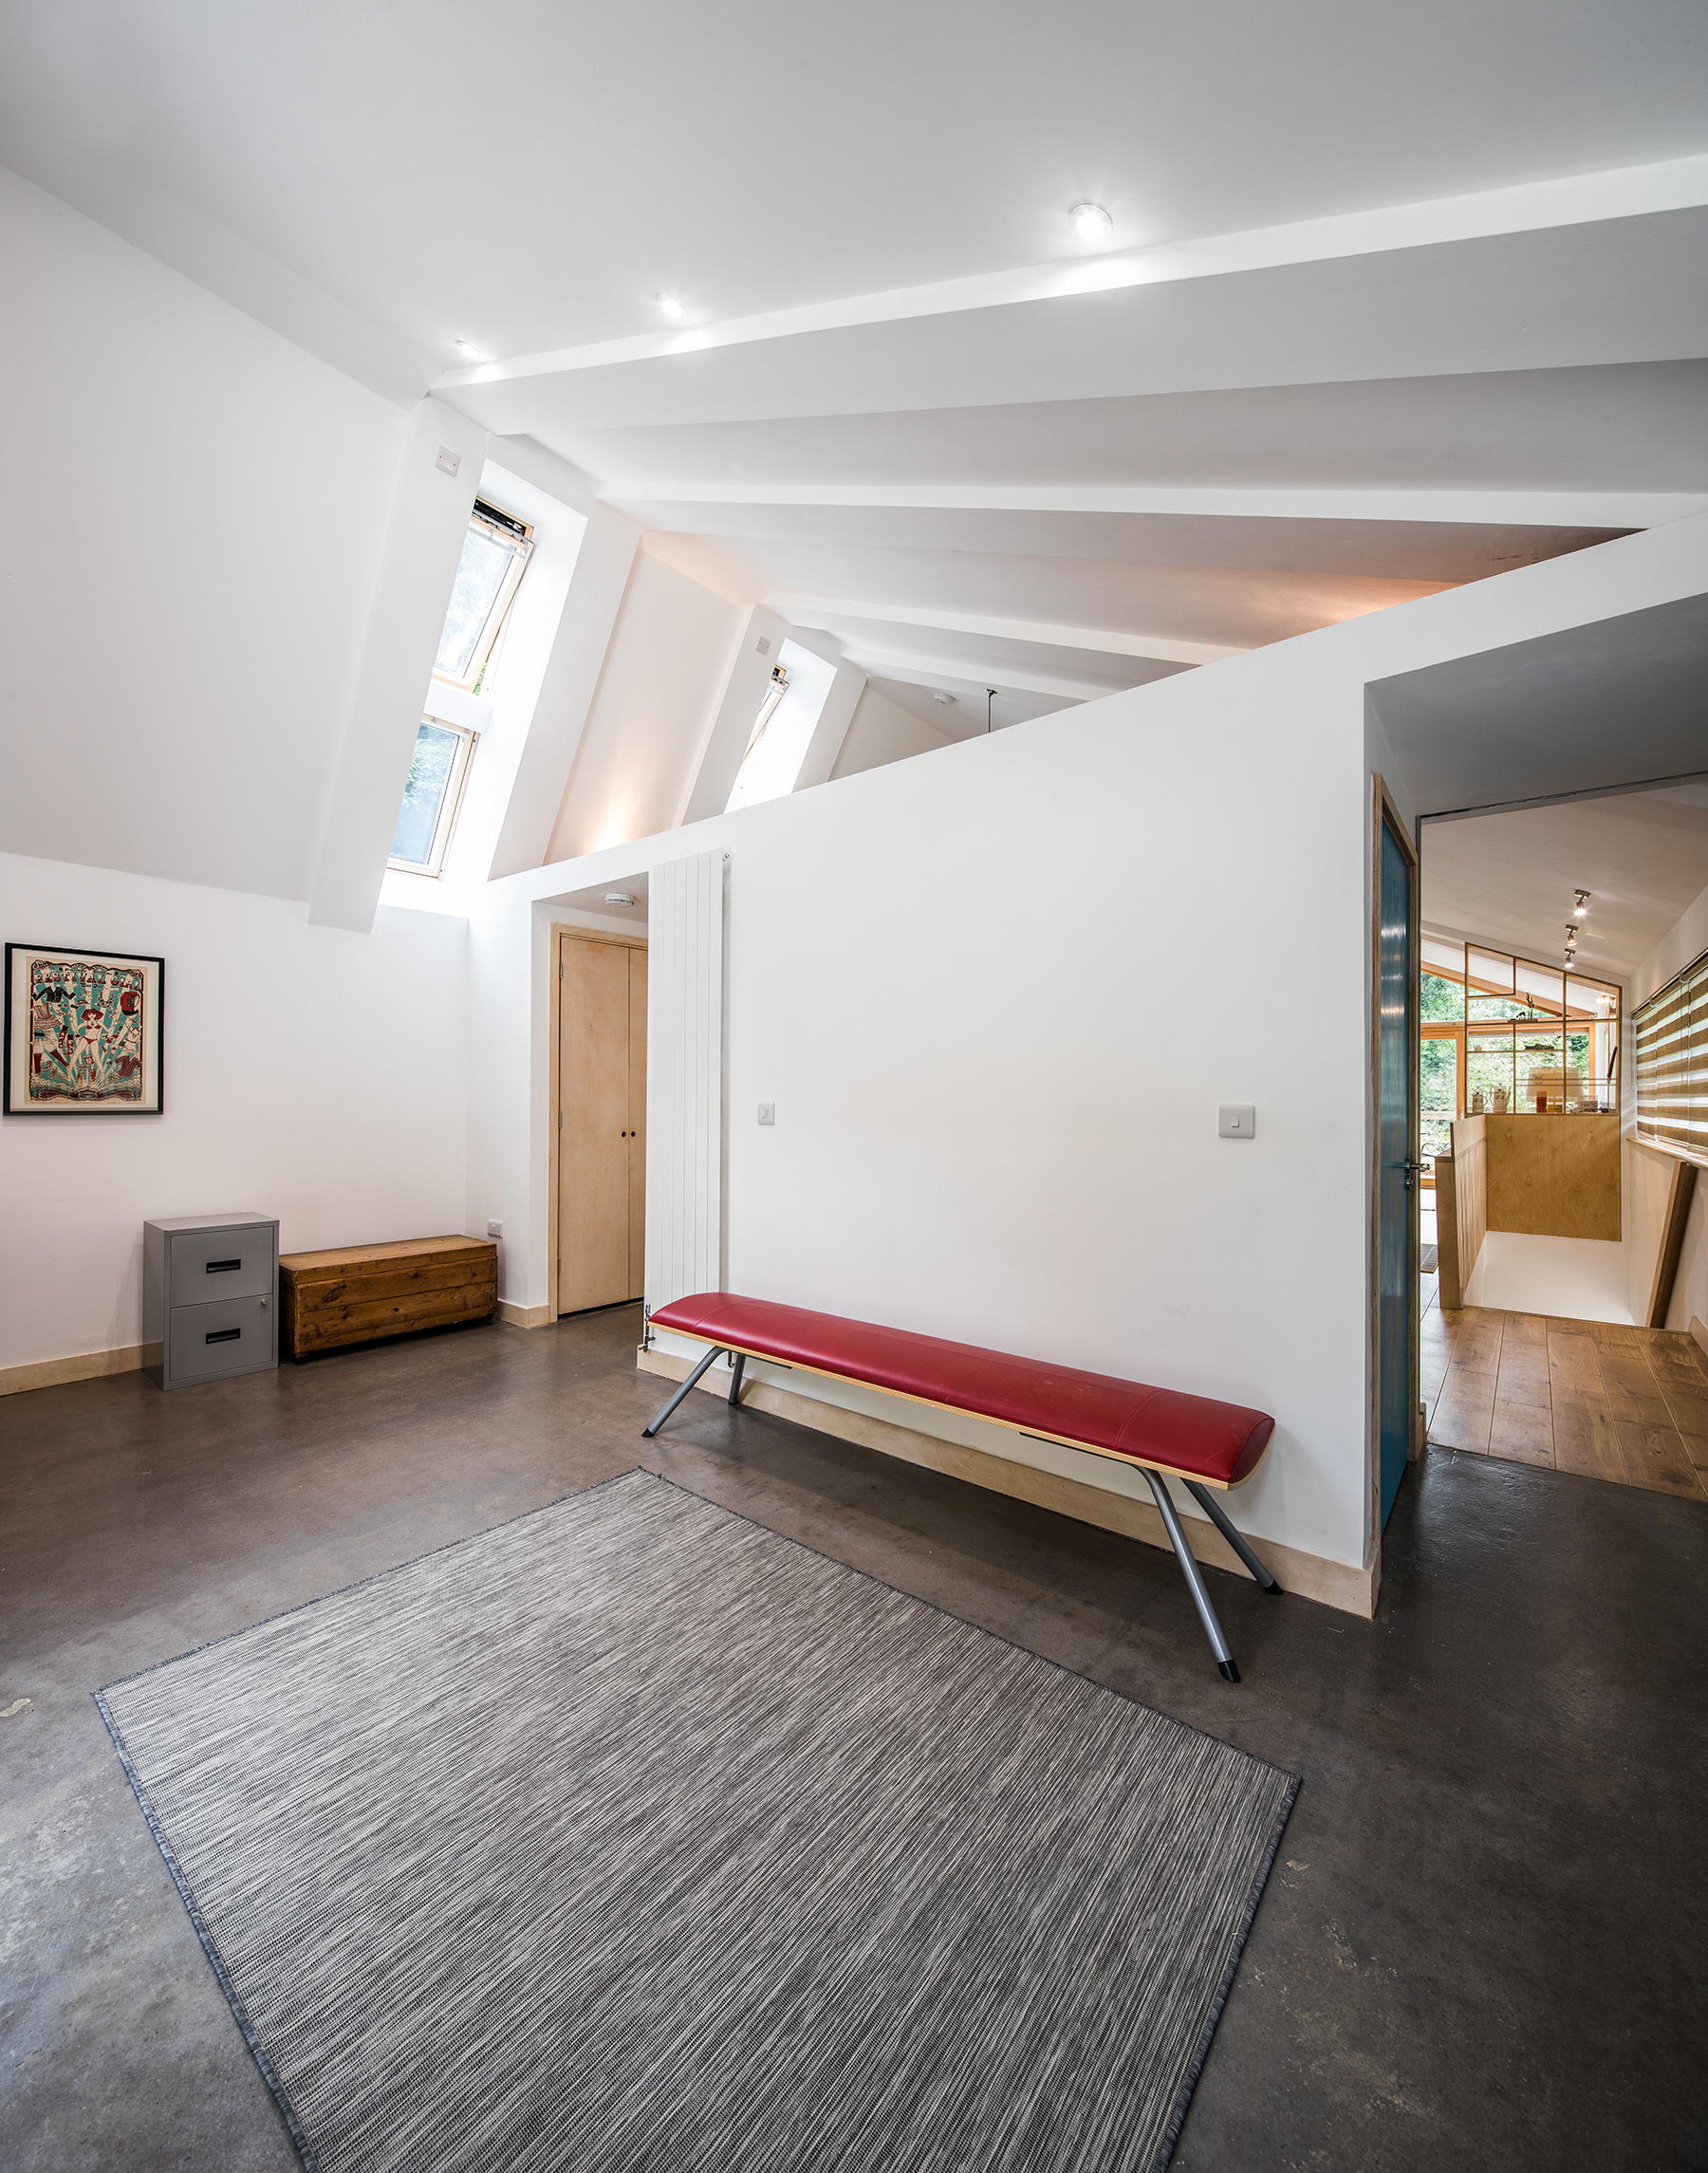 sheffield, architecture, interior photography, architectural photography, self build, new build, contemporary architecture